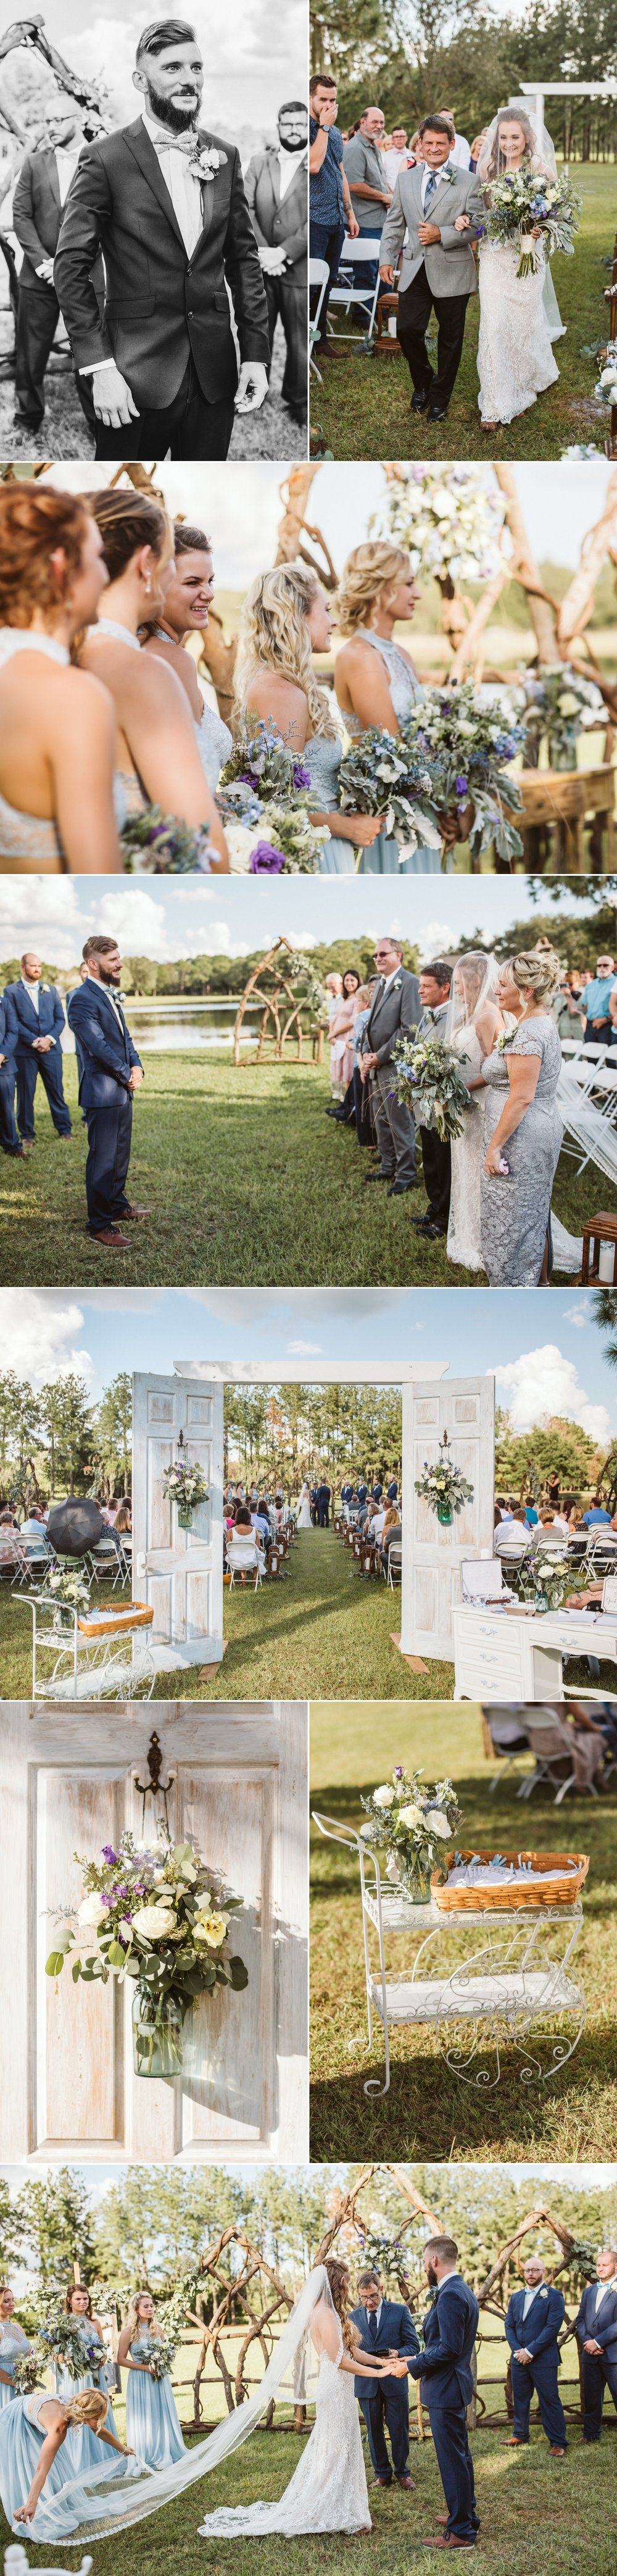 Romantic Floral Outdoor Field Chapel Wedding- Sarasota Florida- Courtney & Isaac16.jpg